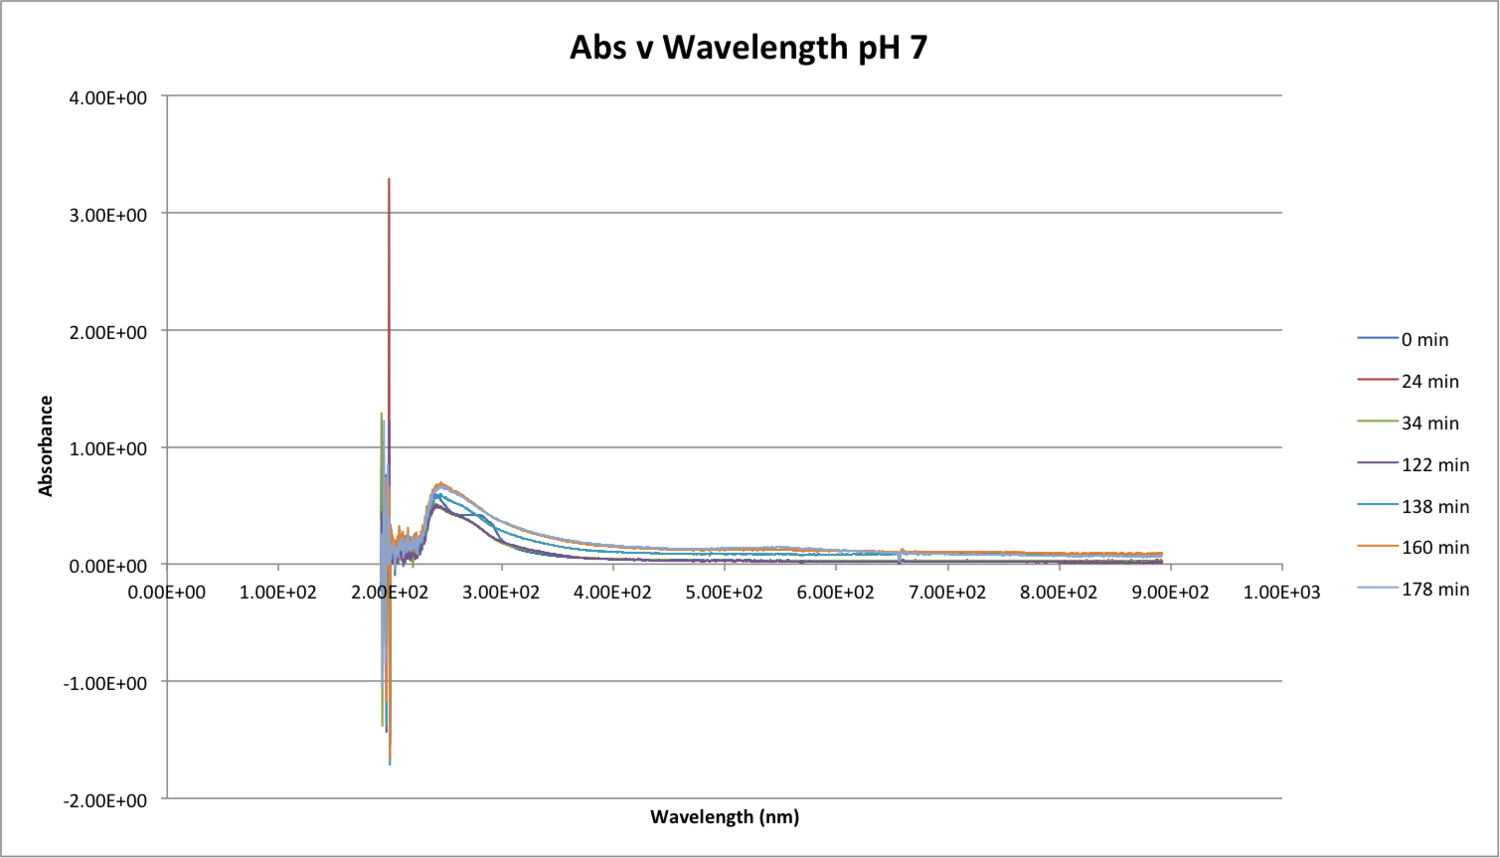 101816 Abs v WAve pH 7.png